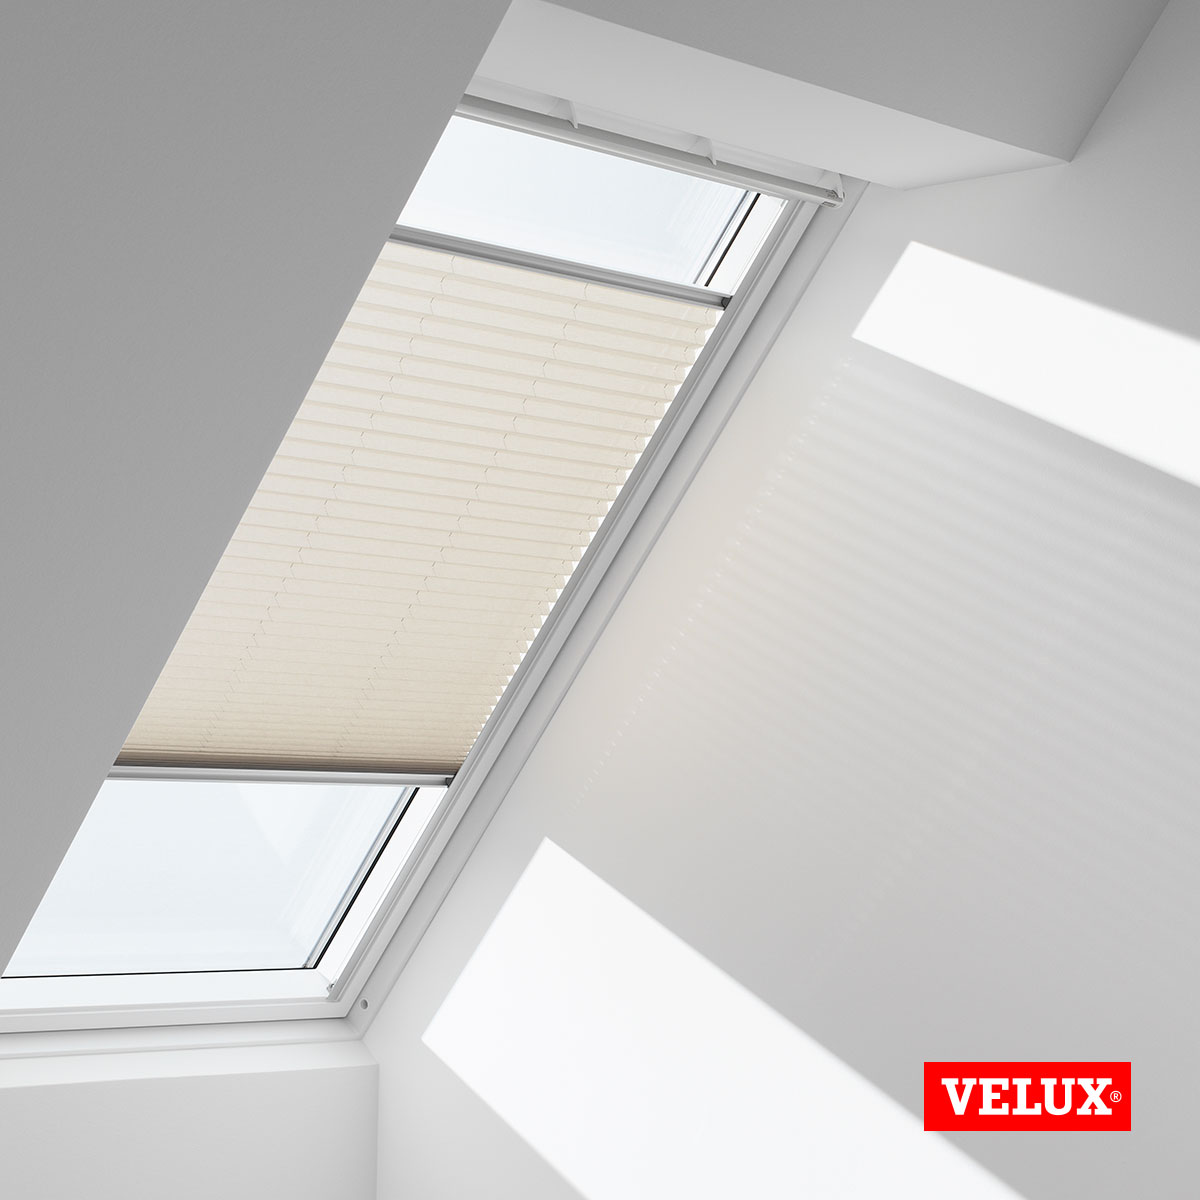 original velux faltstores plissee f r dachfenster ggl ggu gpl gpu ghu ebay. Black Bedroom Furniture Sets. Home Design Ideas